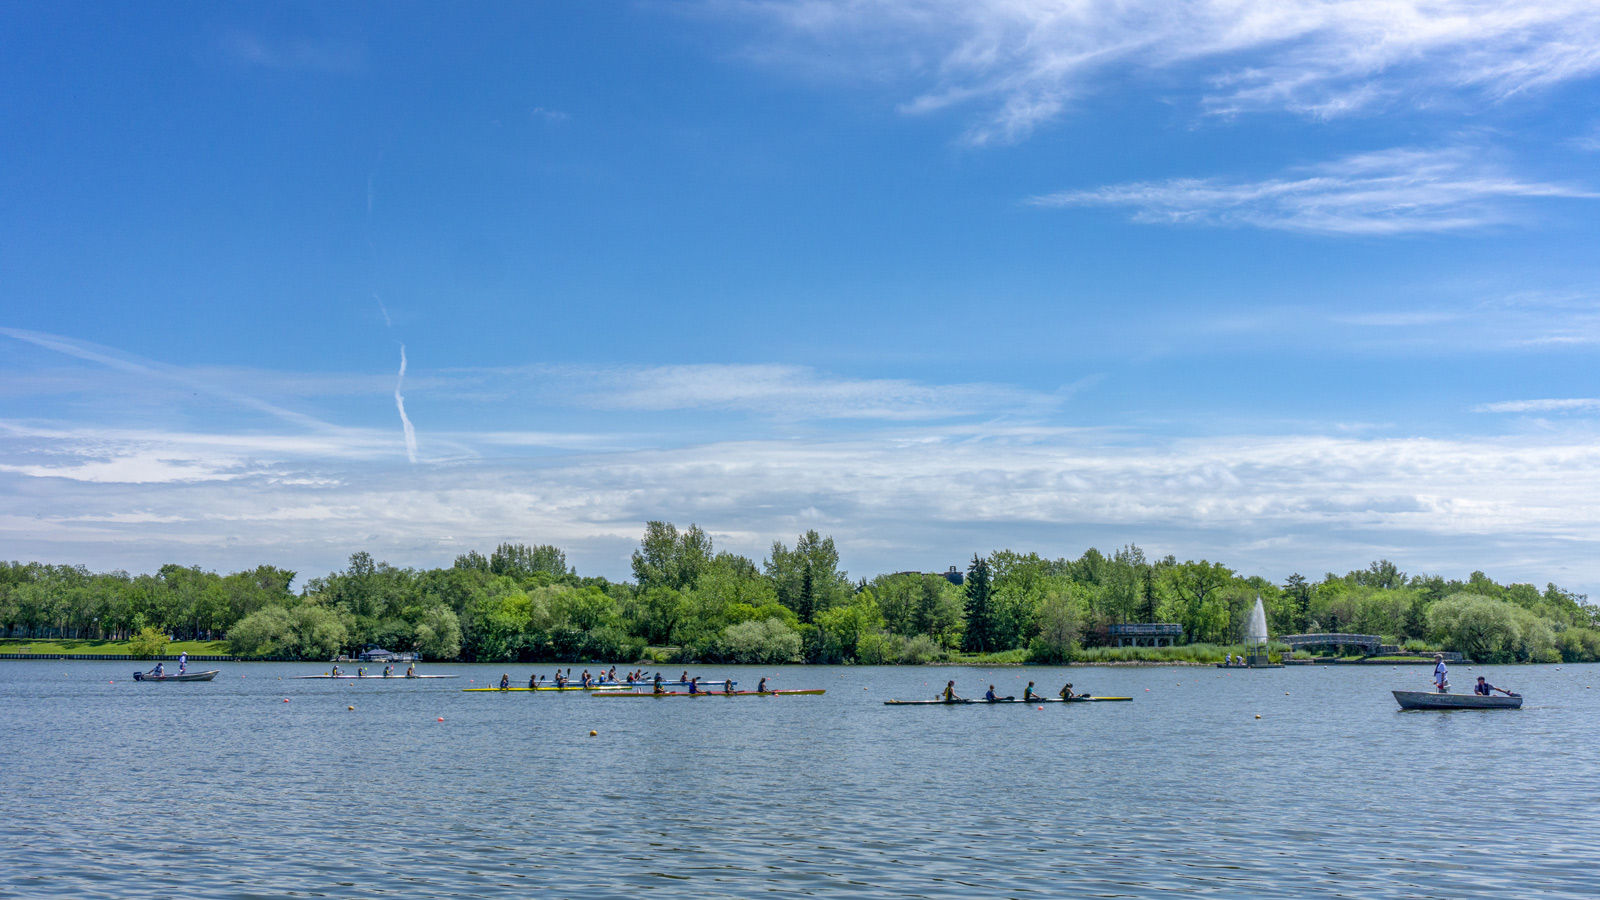 Rowers enjoy some quiet time on Wascana Lake near Regina hotels.